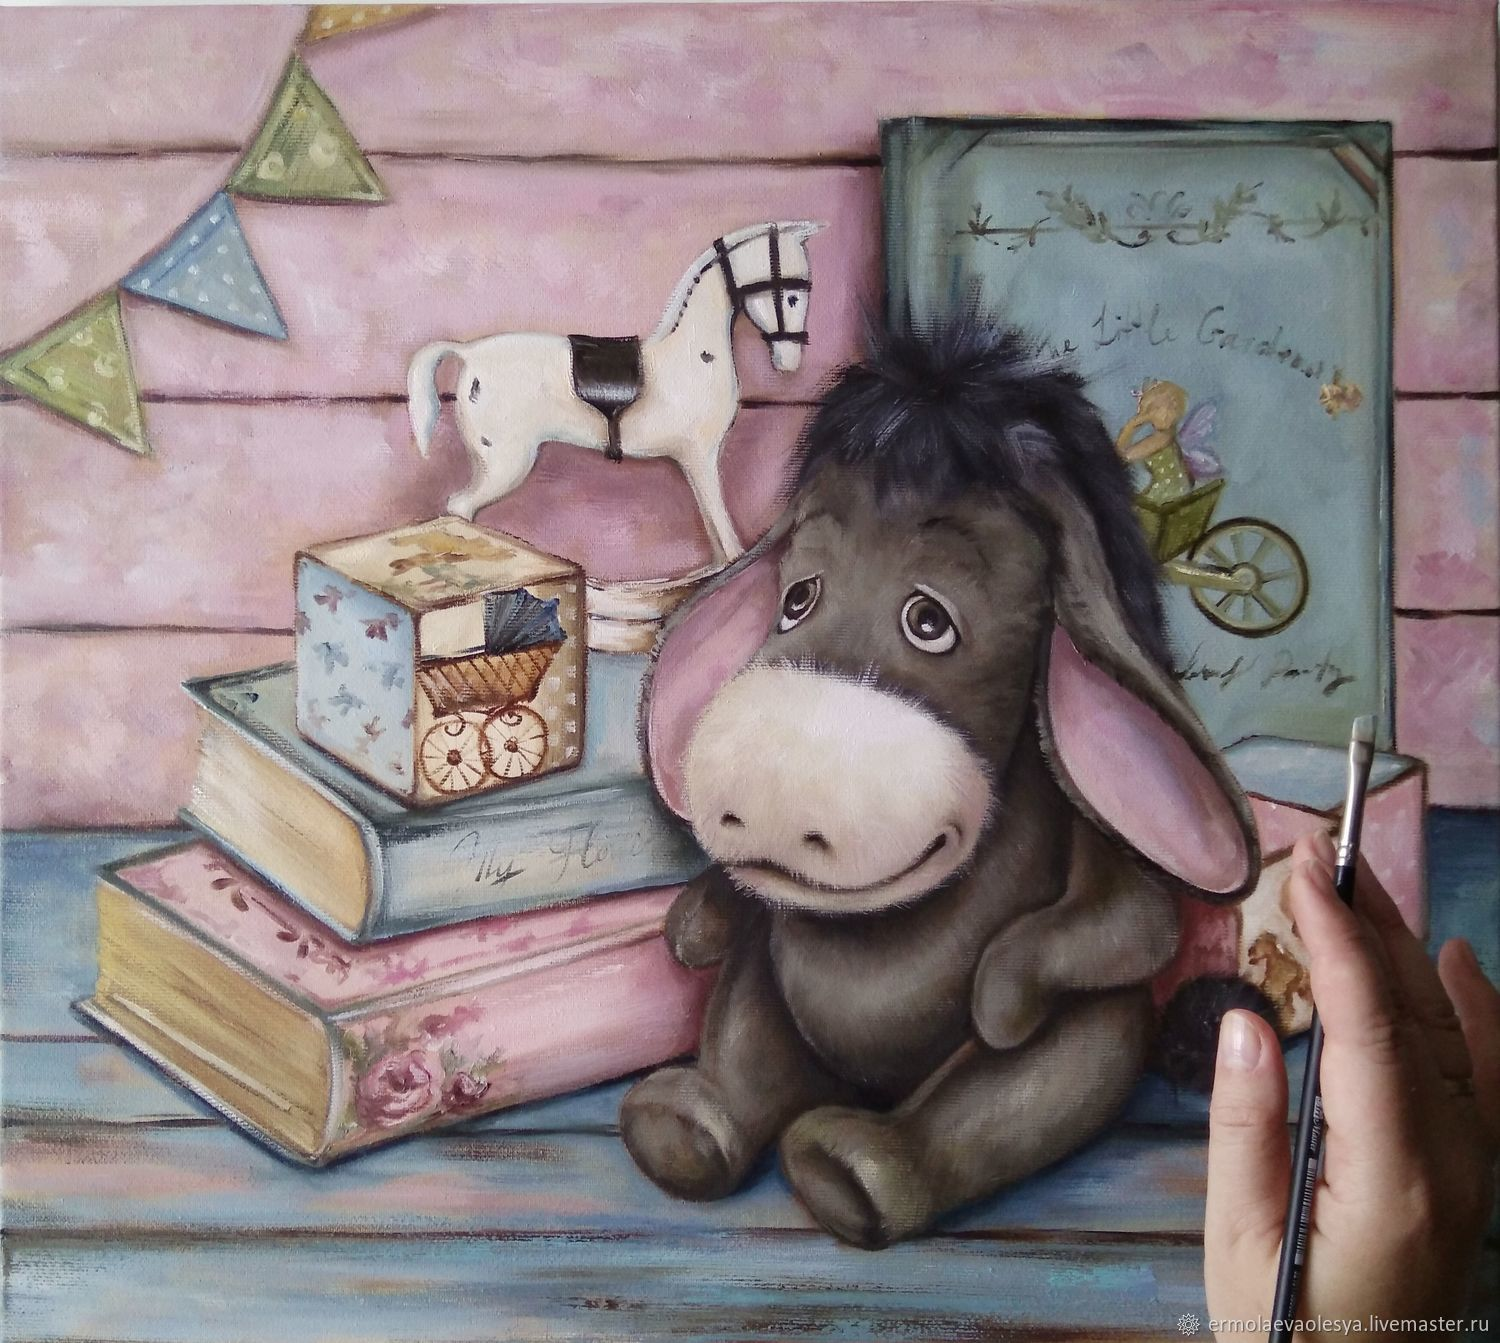 Oil painting with a donkey Teddy Eeyore, Pictures, Zhitomir,  Фото №1